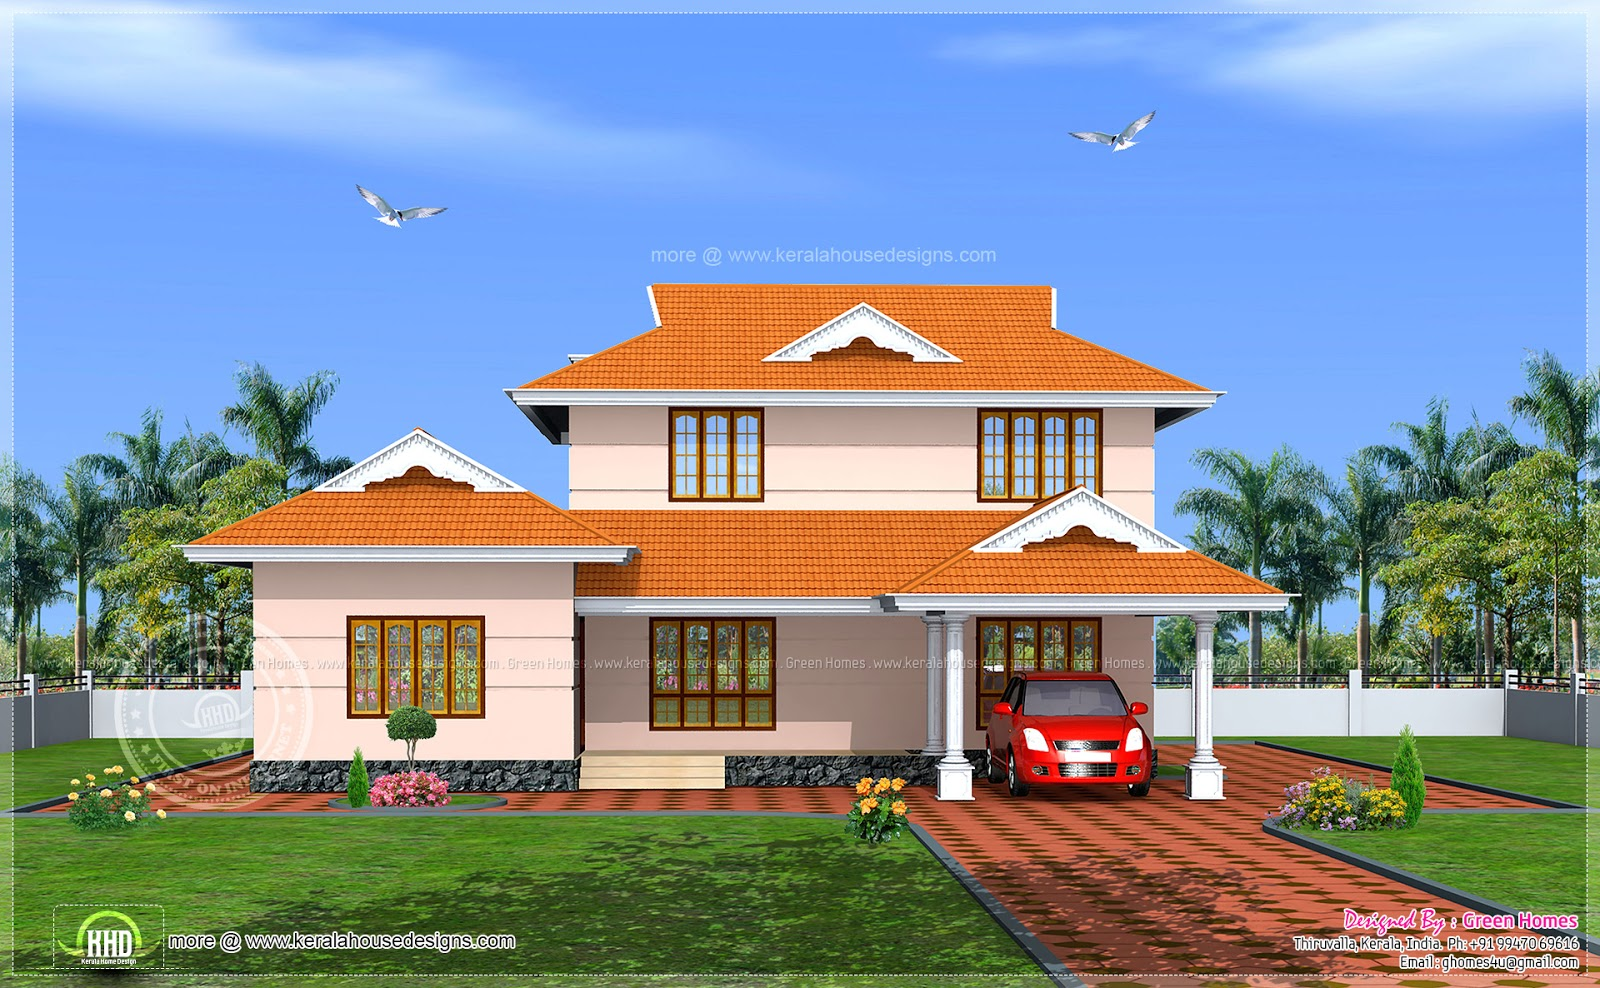 House plans and design house plans in kerala model with for Kerala homes photo gallery